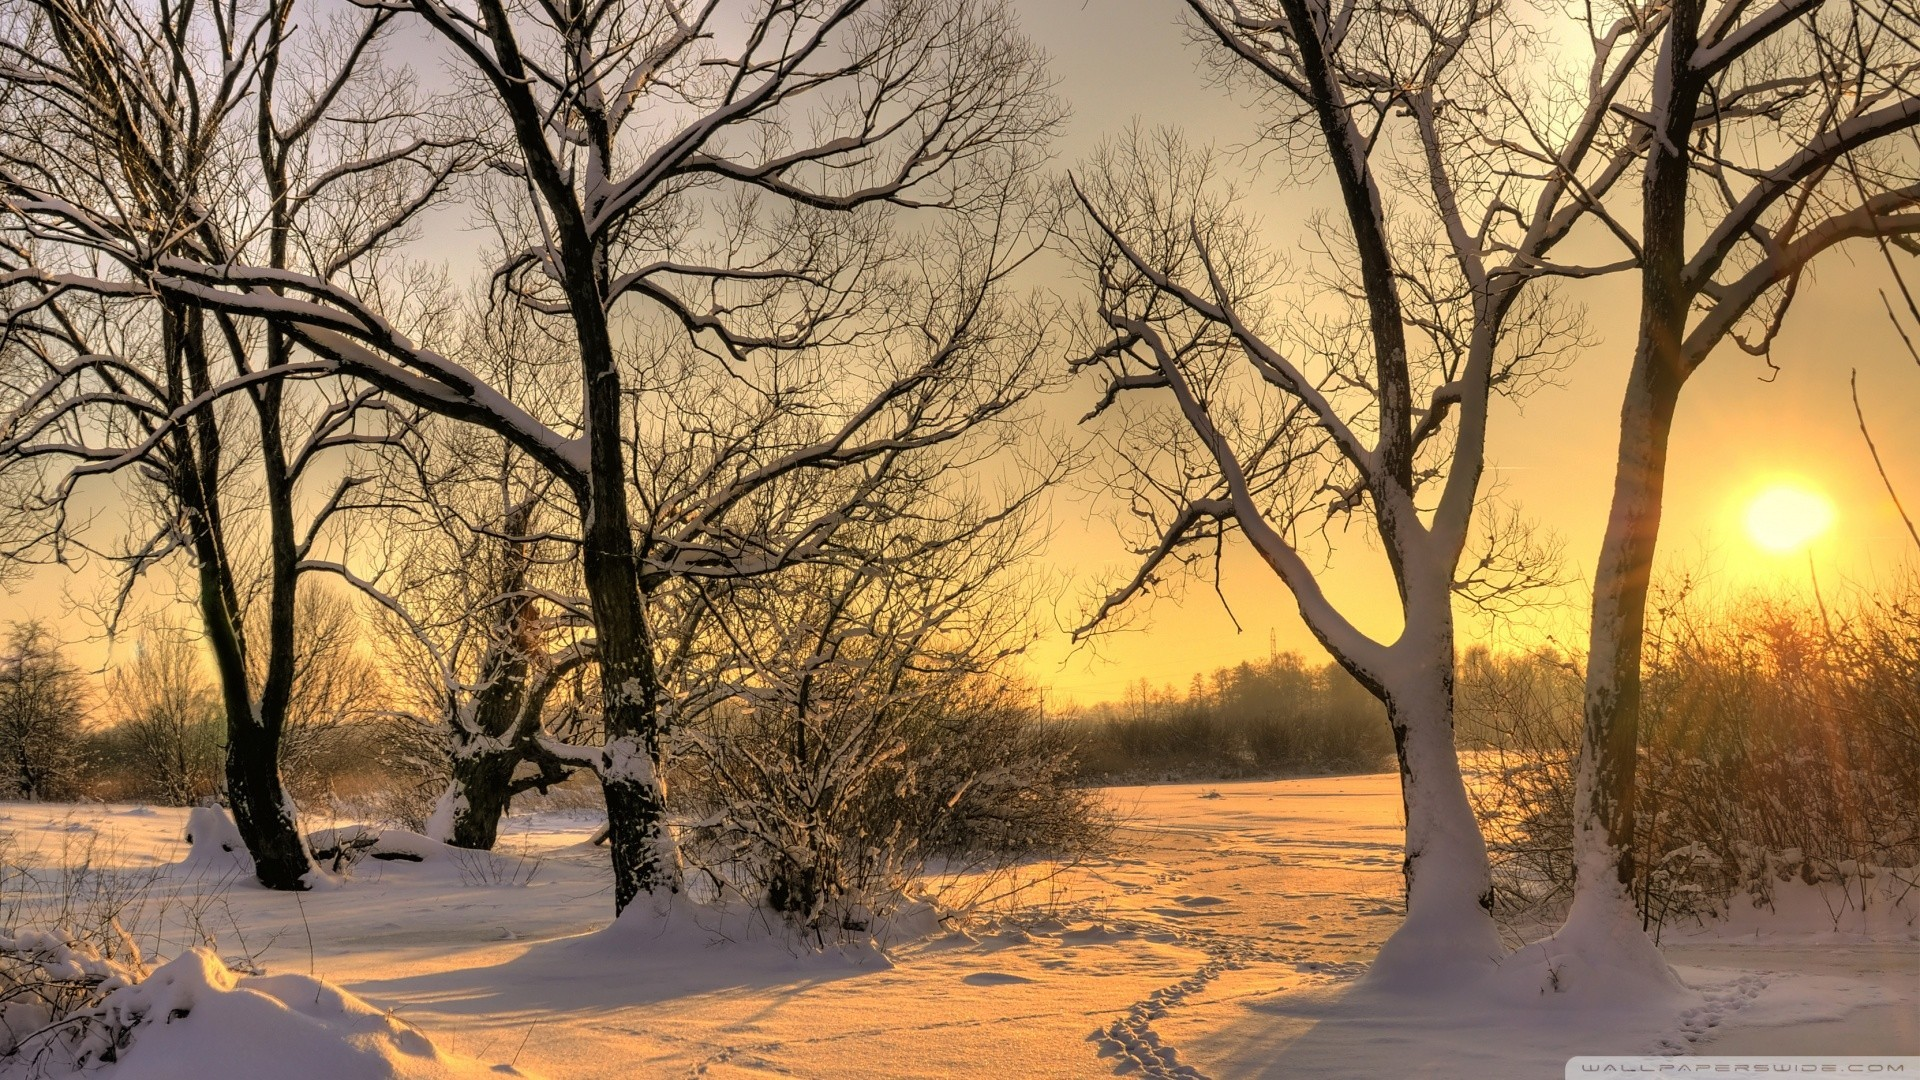 1920x1080 Winter - Footsteps Winter Sunlight Snow Trees Desktop Pictures for HD 16:9  High Definition